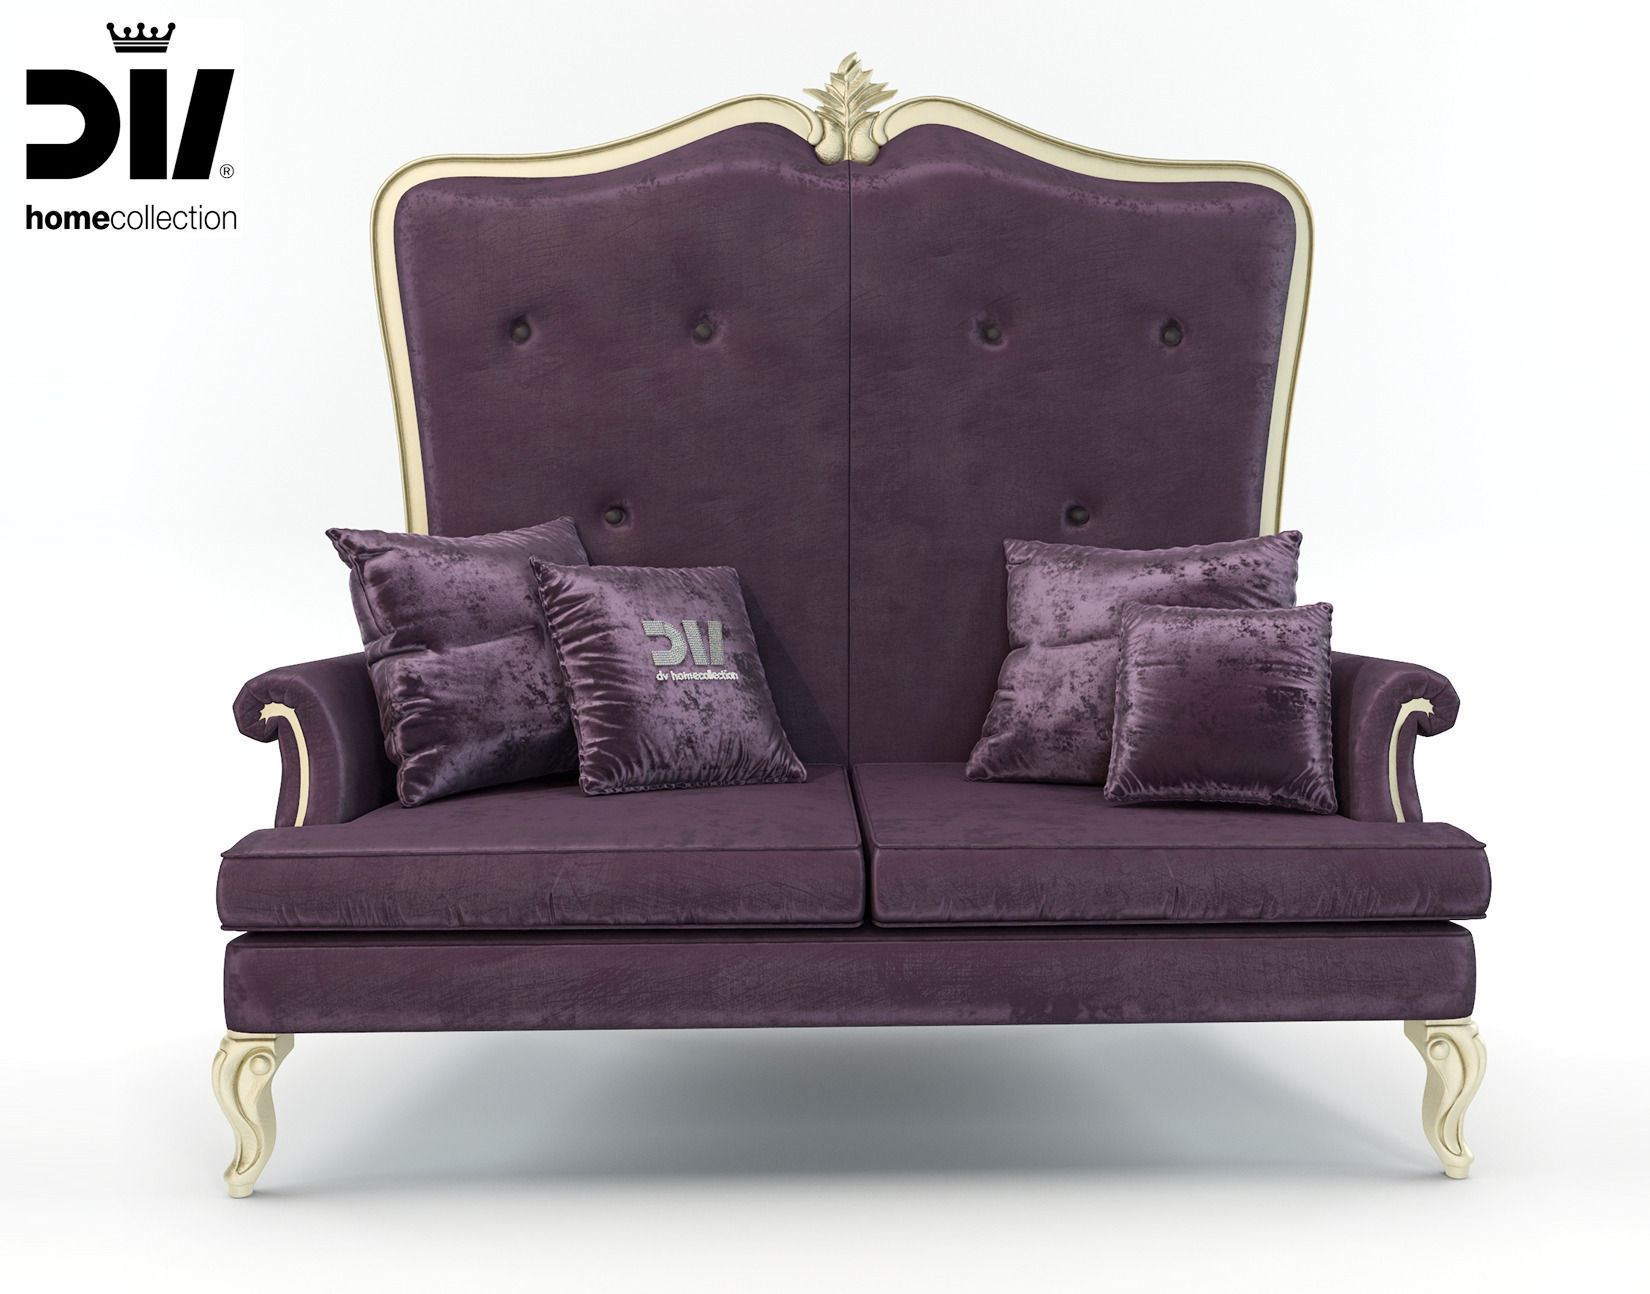 world decaso loveseat a by style customizable class talisman standard sofa french back product bespoke high